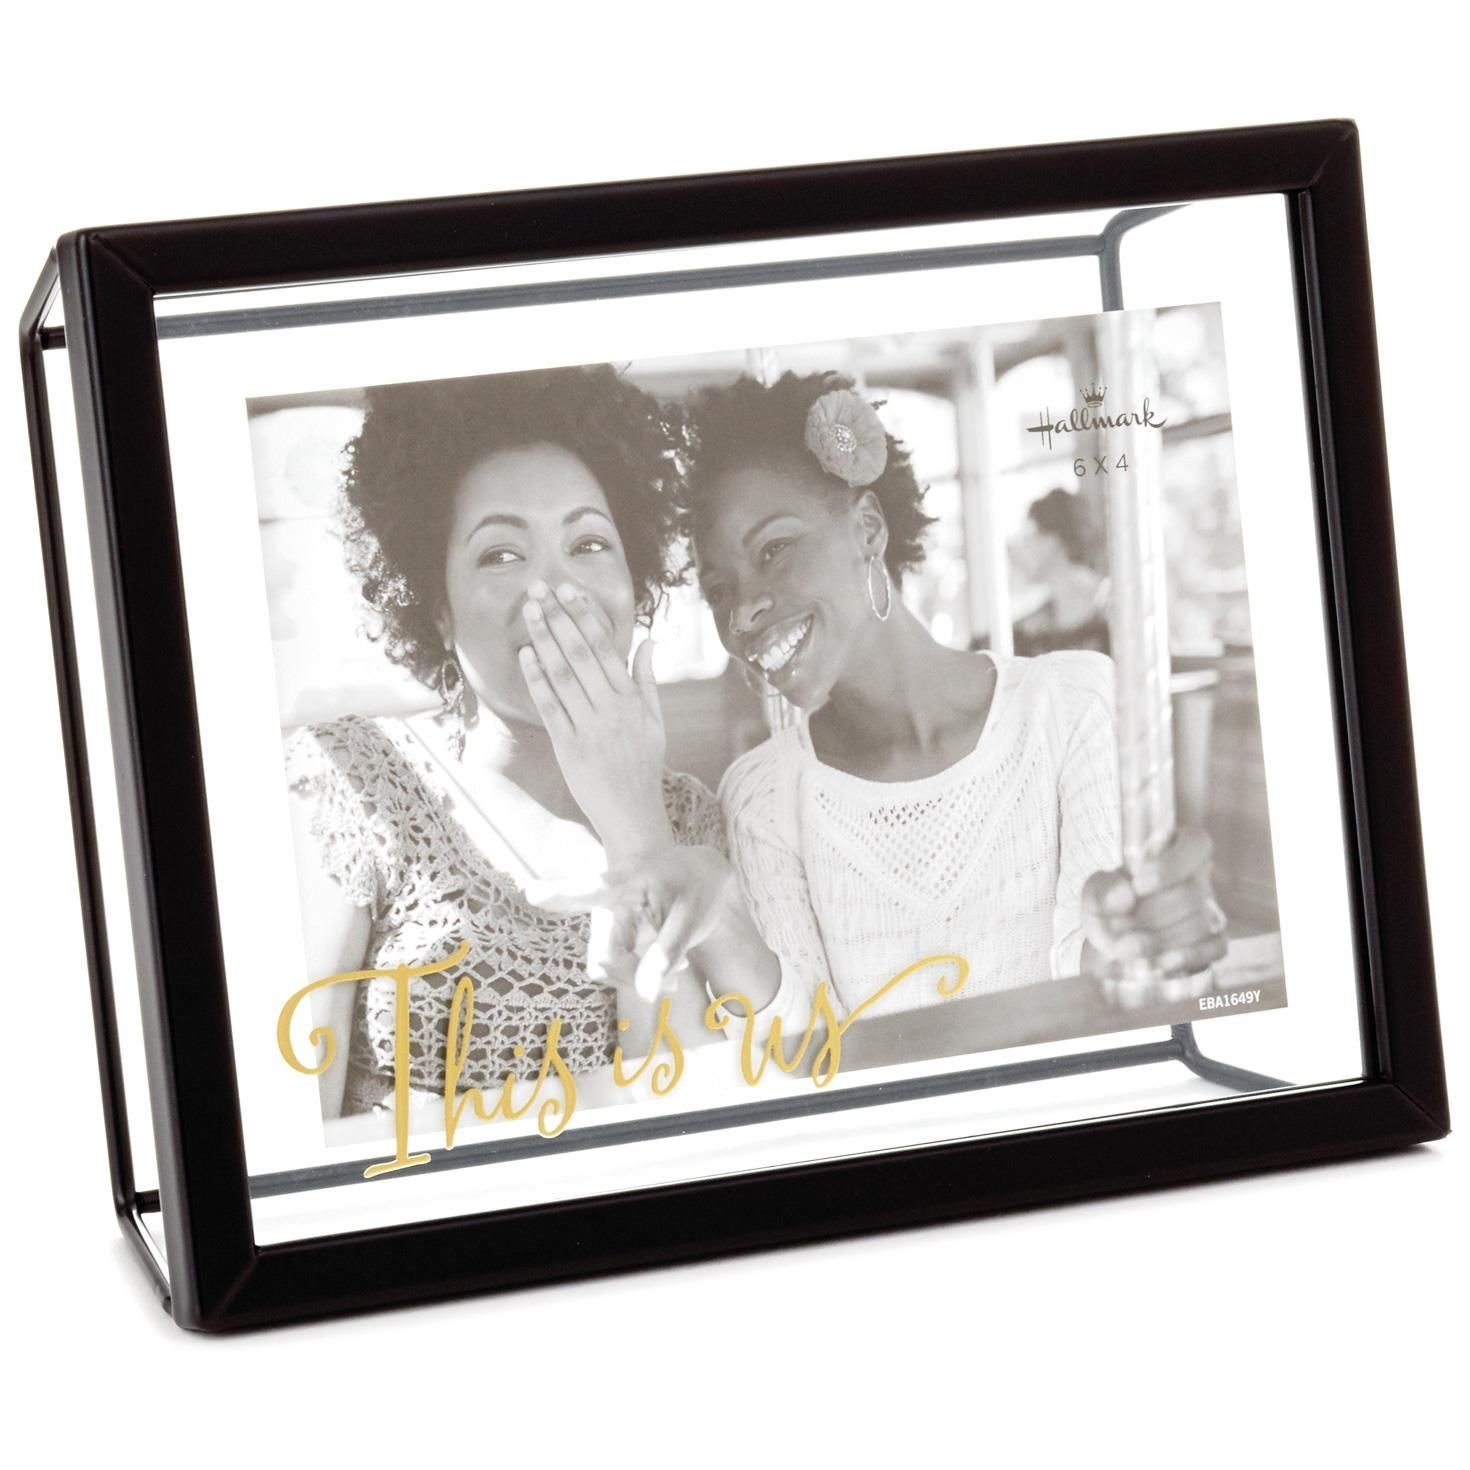 Amazoncom Hallmark This Is Us Glass And Metal Picture Frame 4x6